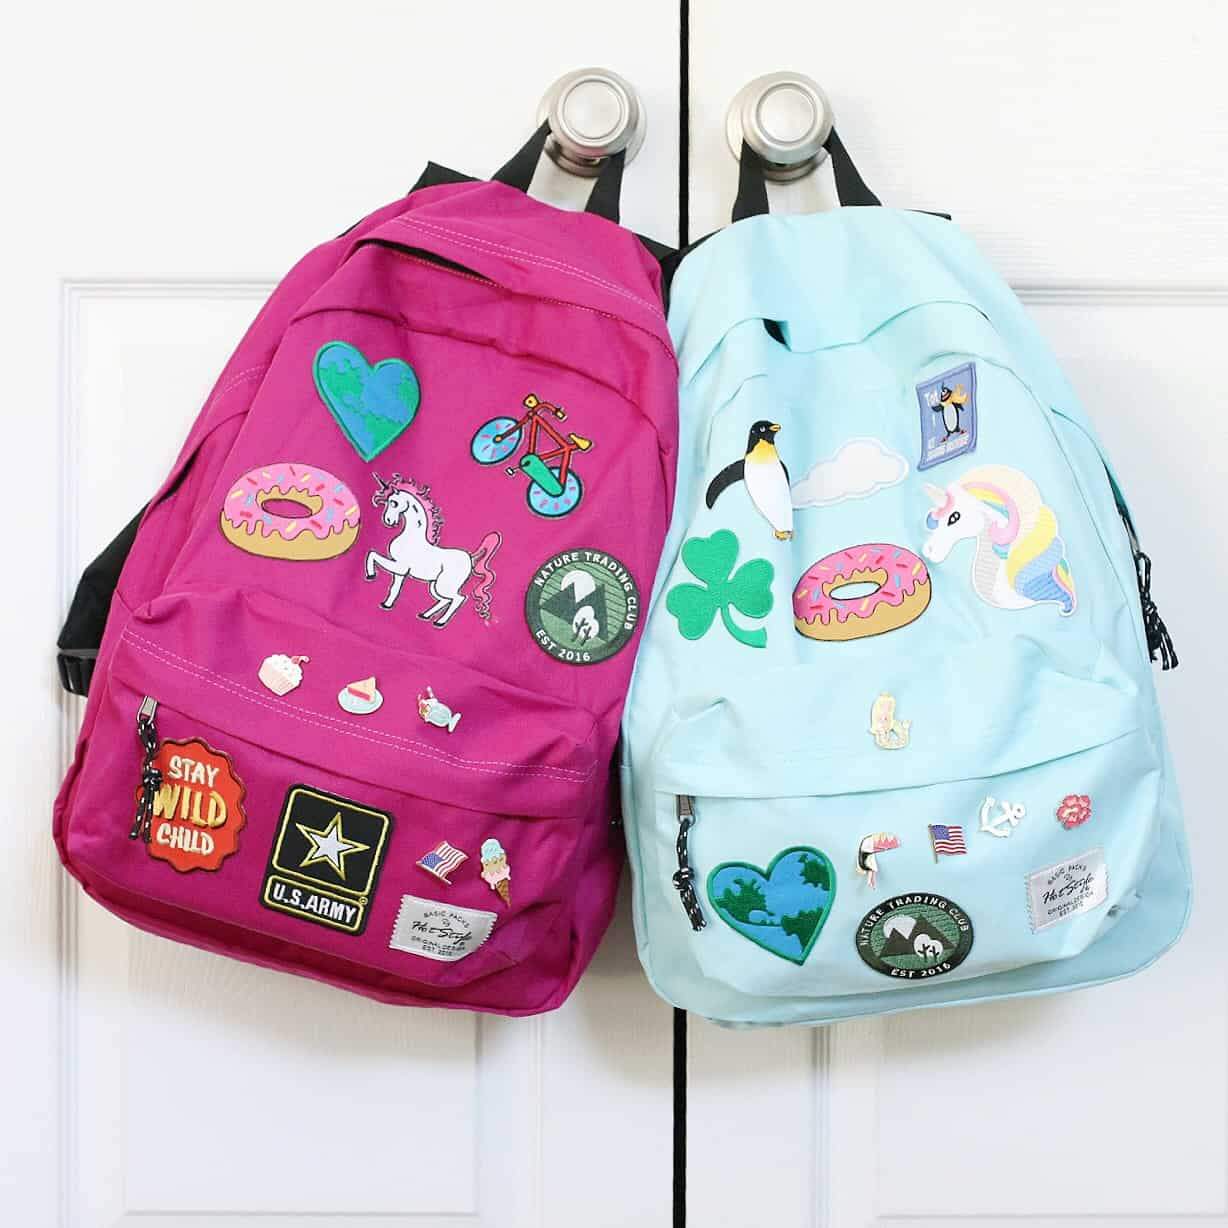 Diy fun patch backpacks